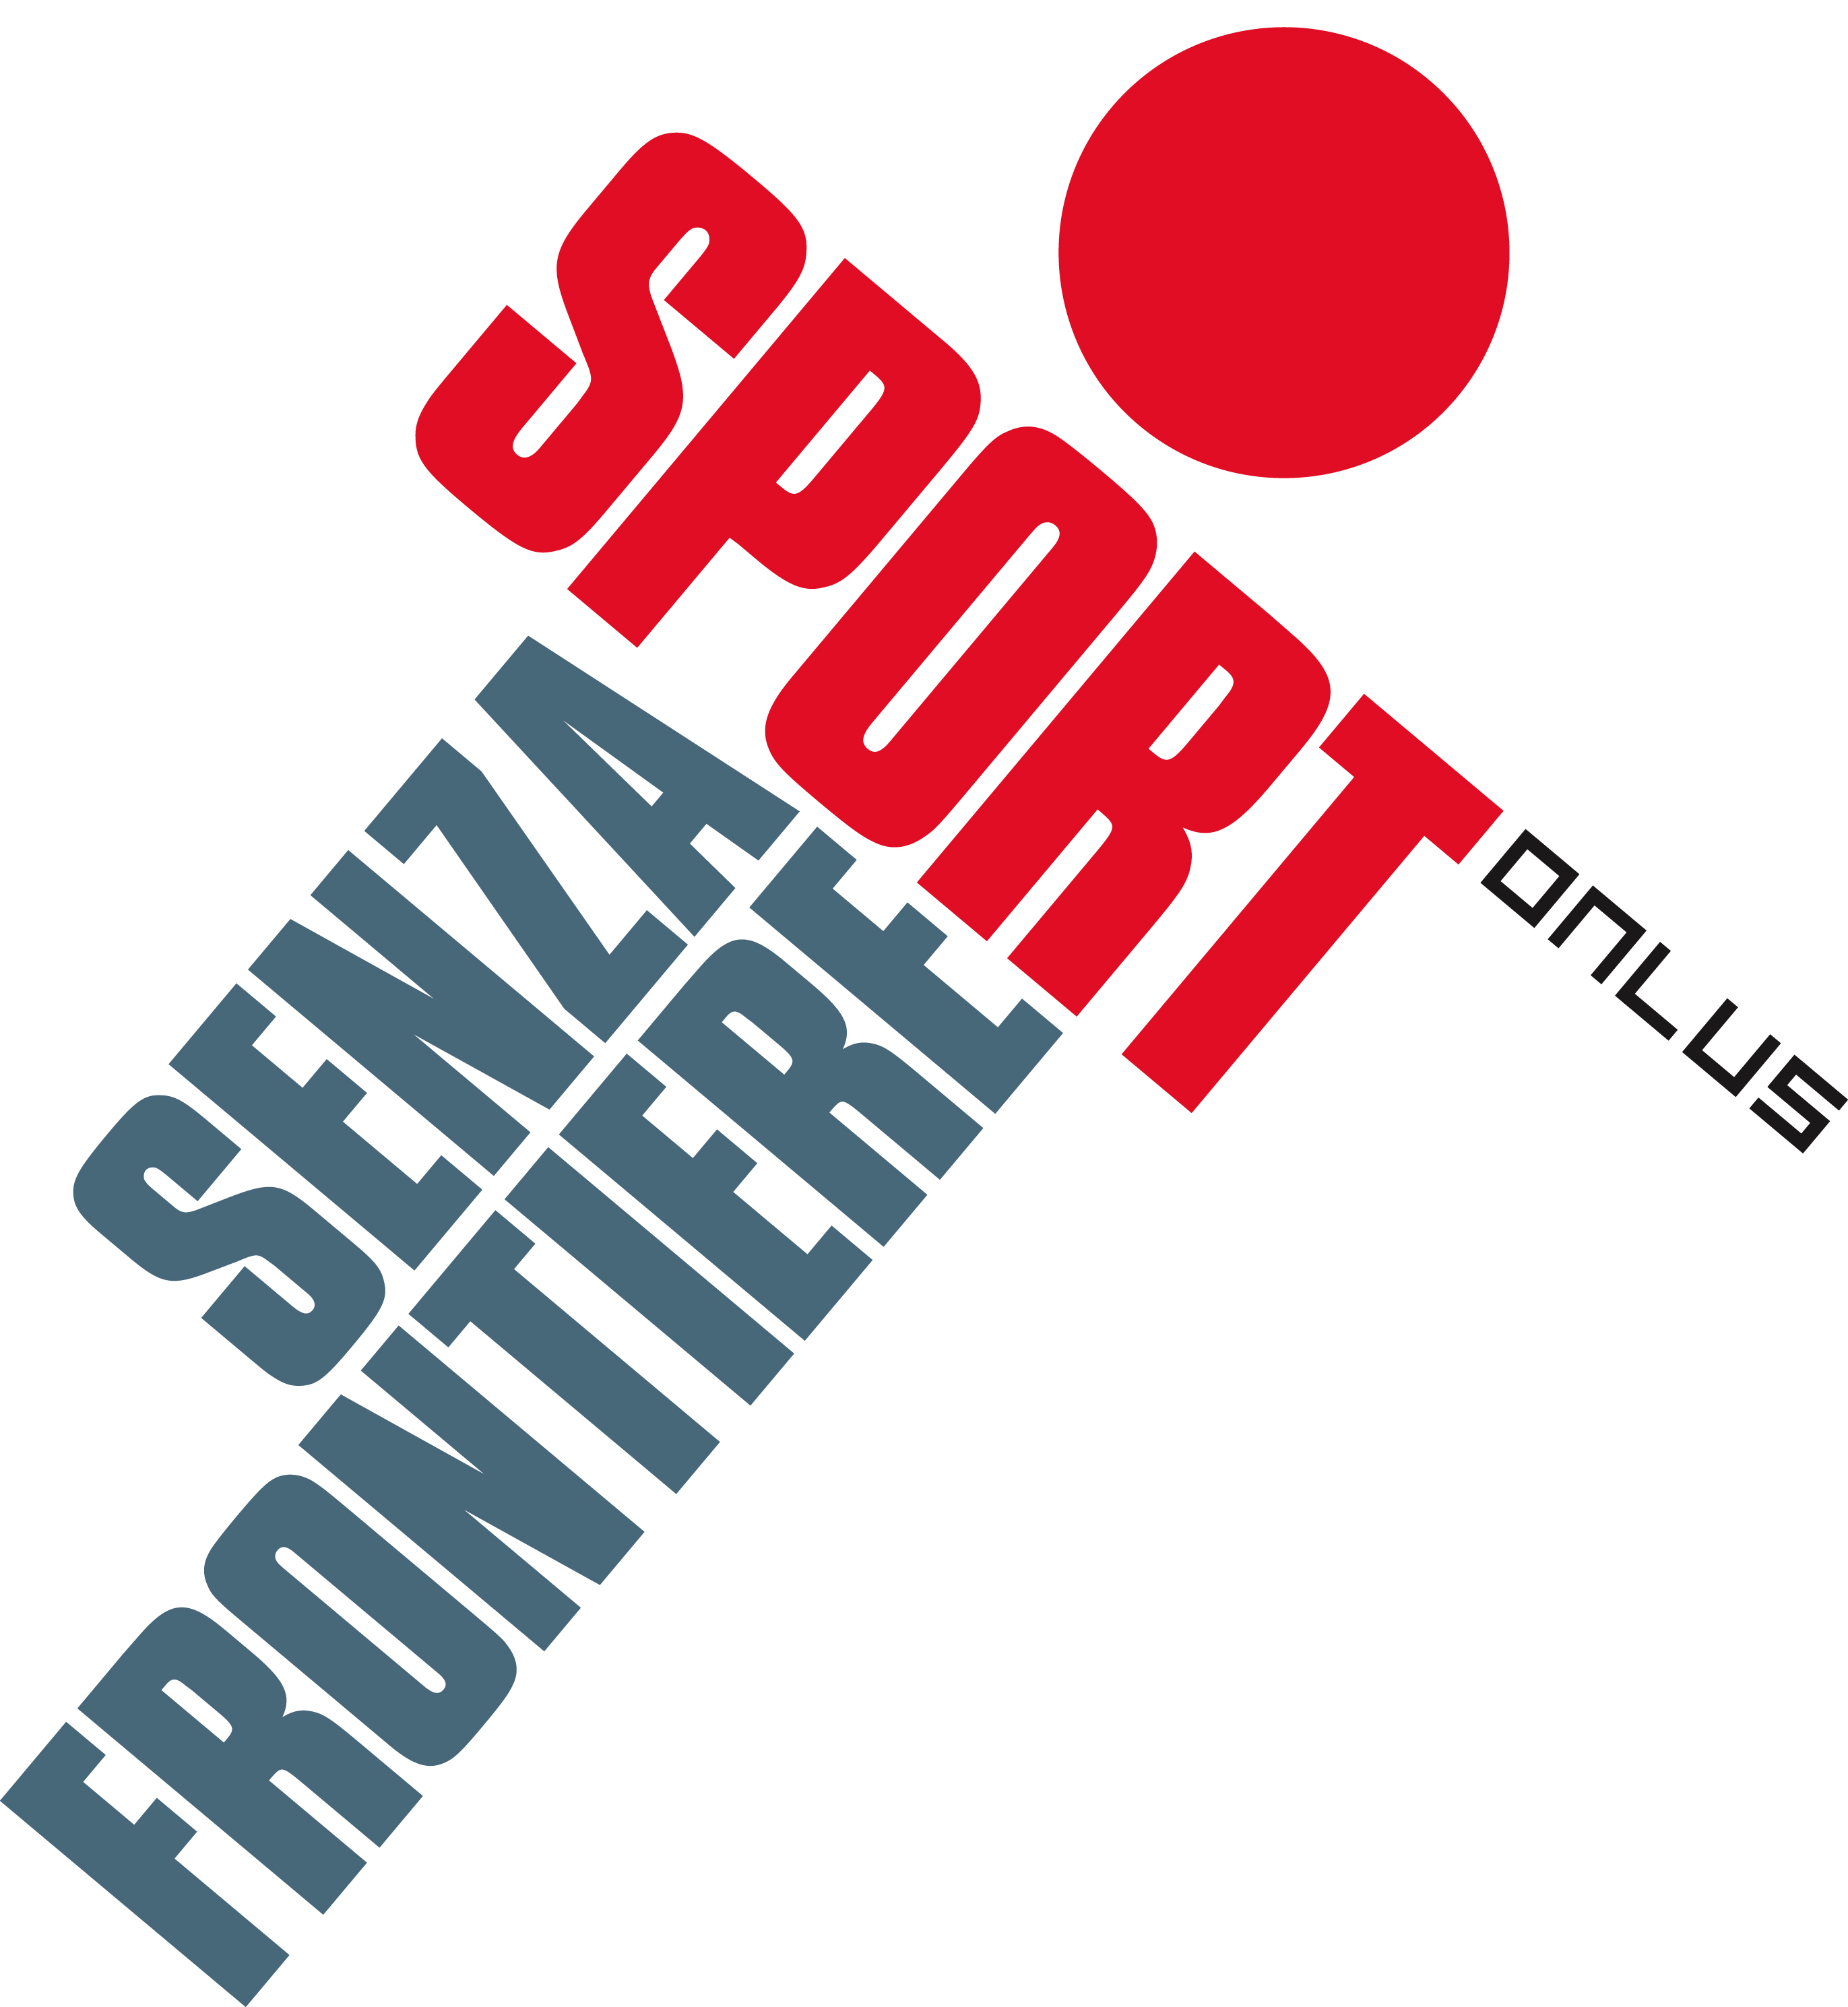 Donate to Sport Senza Frontiere Onlus - GlobalGiving